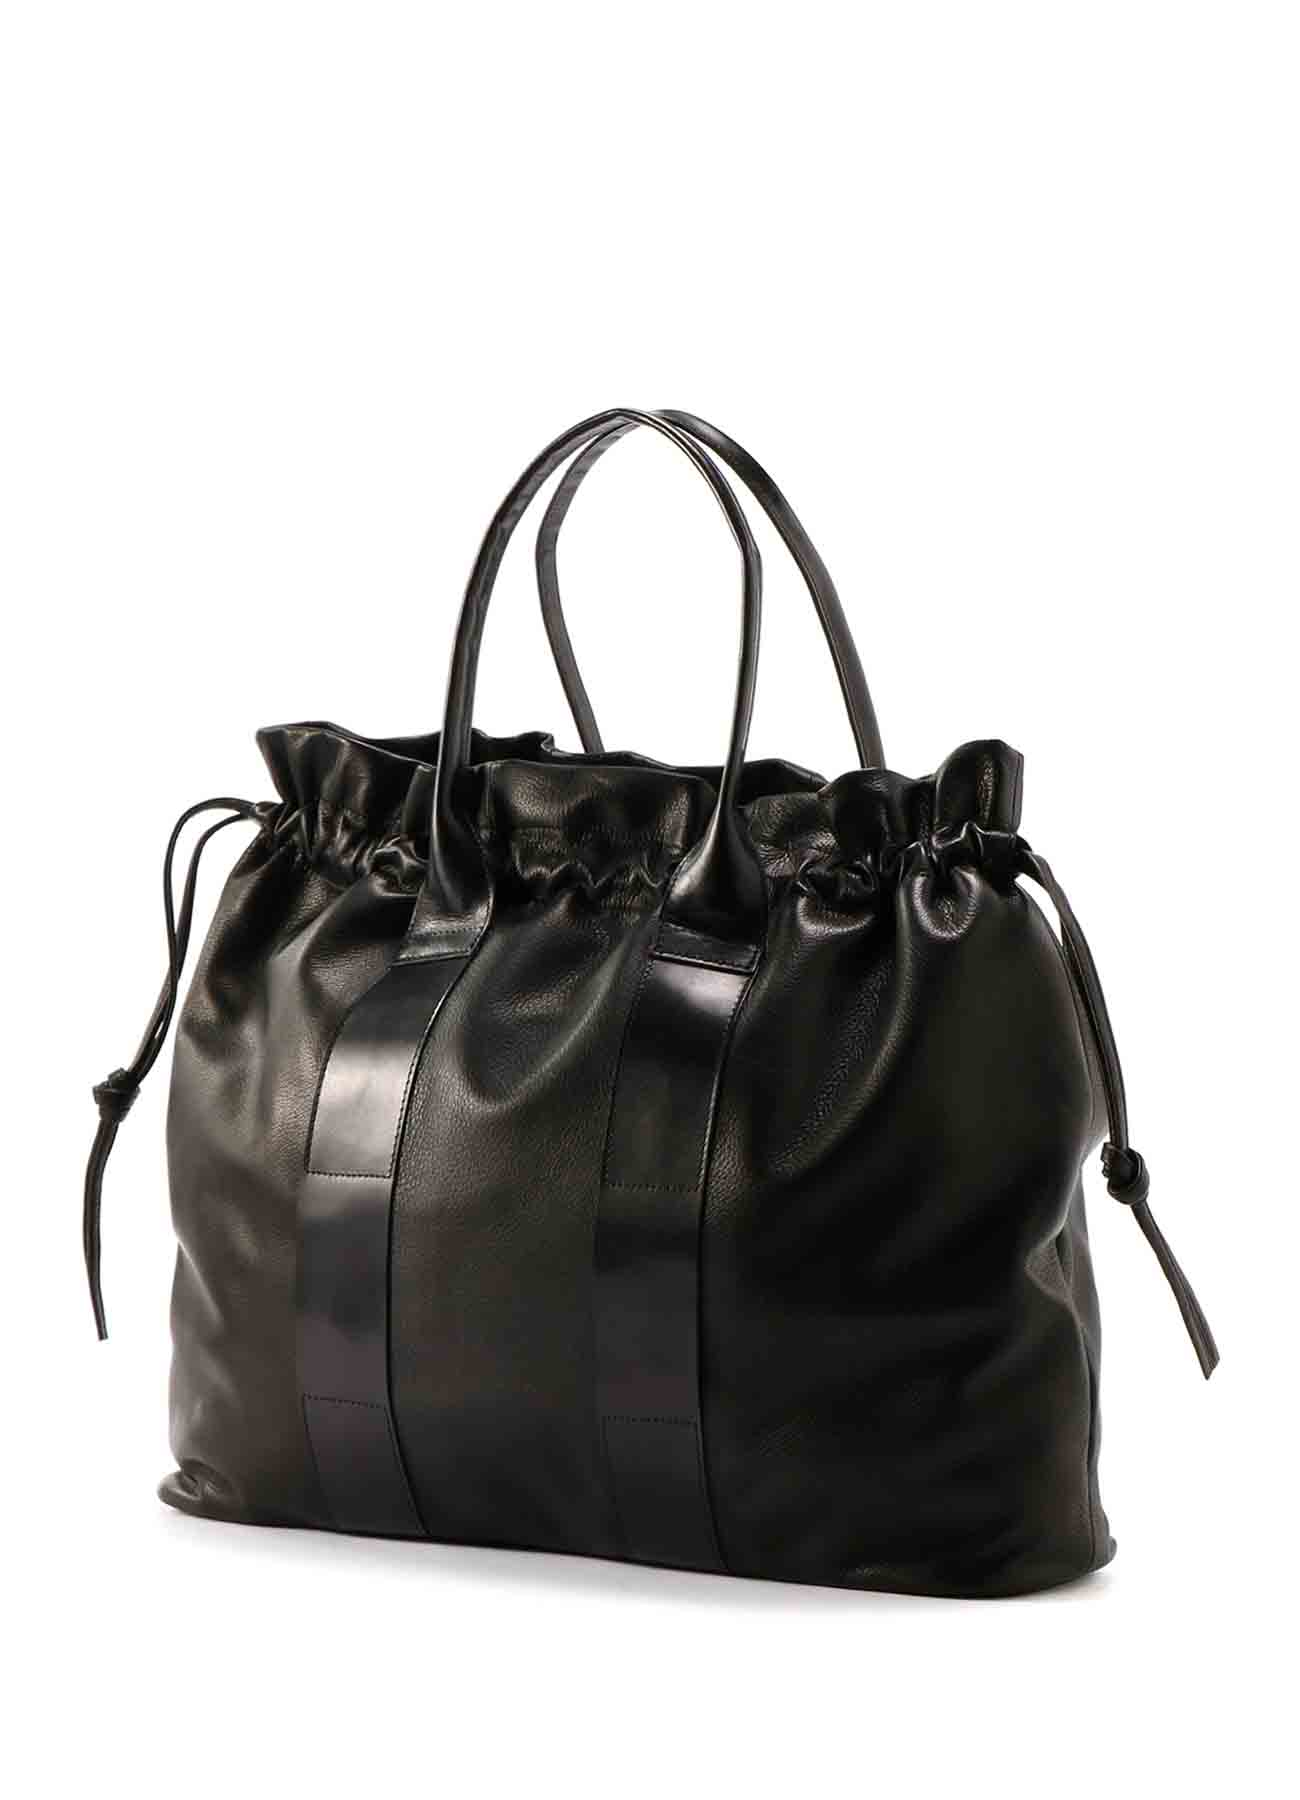 SOFT LEATHER COMBI LEATHER TOTE BAG